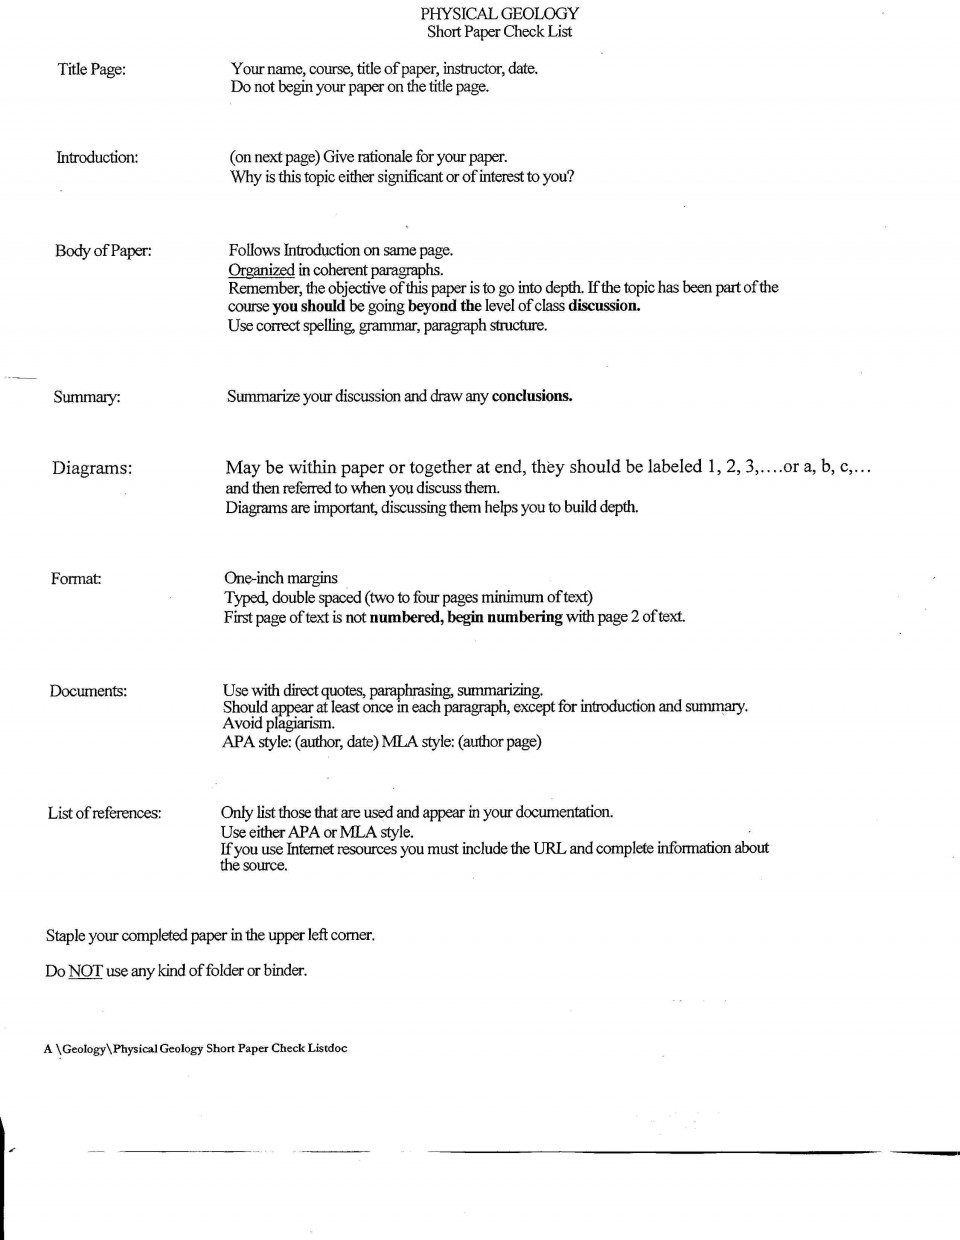 010 Researchs Topics Short Checklist Phenomenal Research Papers For High School Students Paper About Elementary Education Hot In Computer Science 960